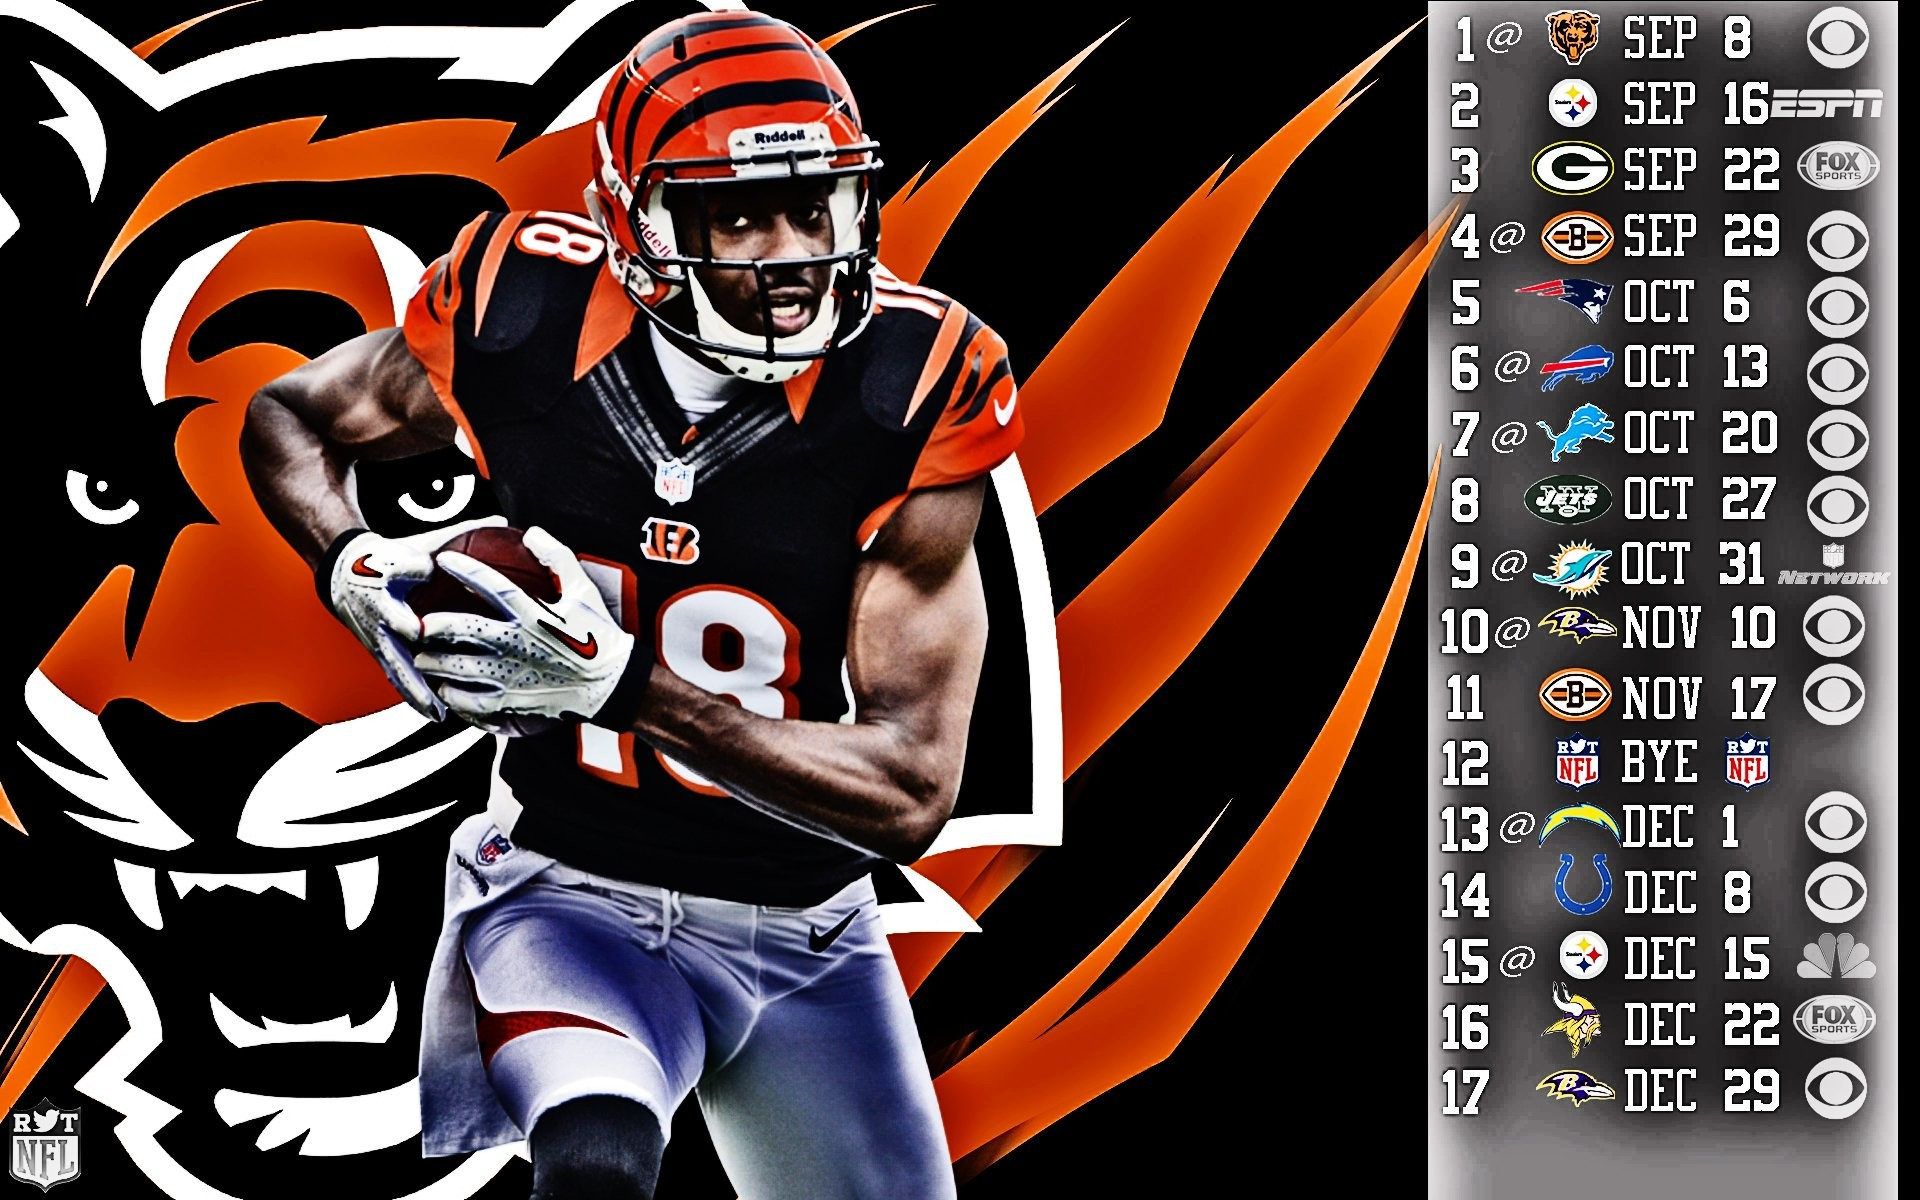 1920x1200 Football wallpaper bengals cincinnati wallpapers.